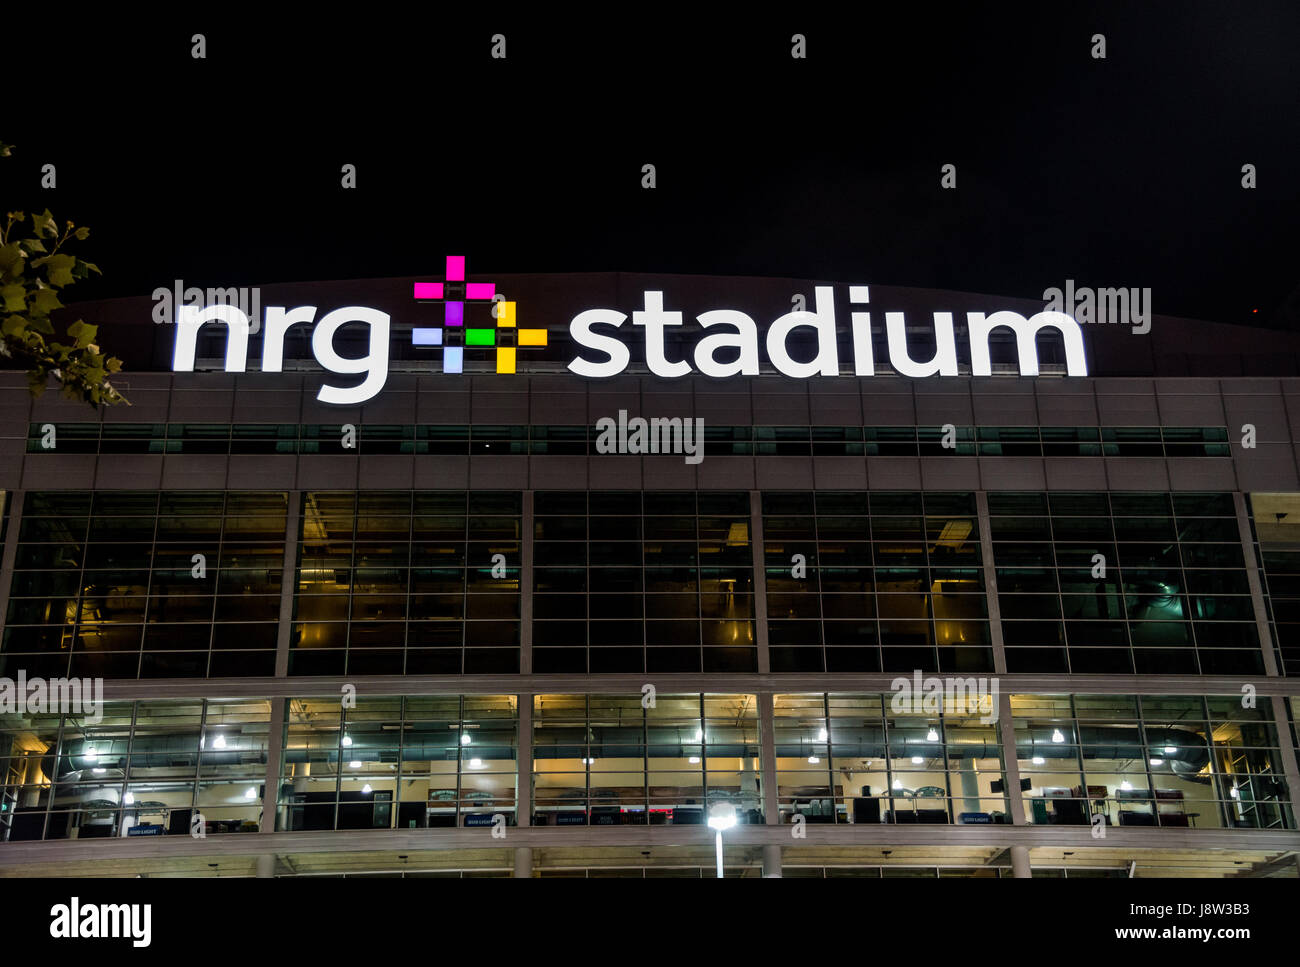 Nrg Stadium Stock Photos Amp Nrg Stadium Stock Images Alamy